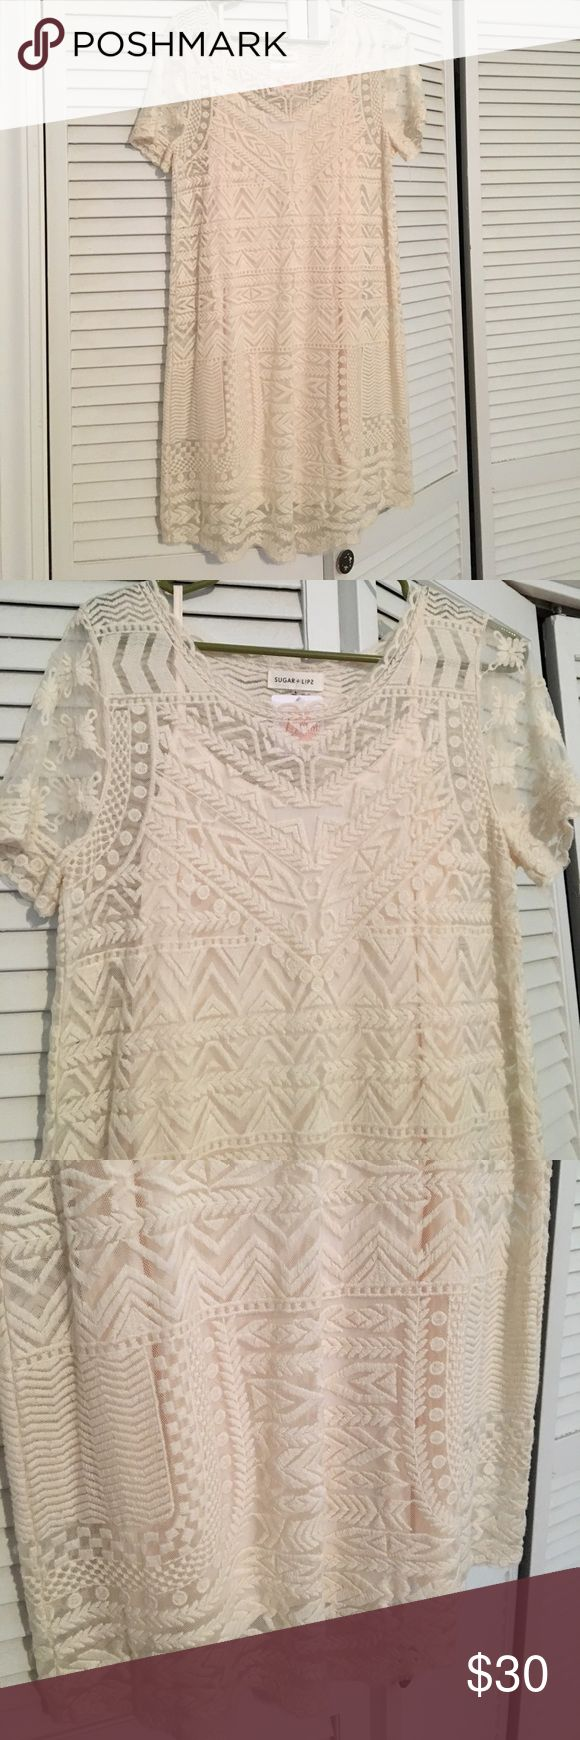 Lace Cream Colored Dress NWT Lace Cream Colored Dress. NWT. Boutique dress. Sugar + Lips Dresses